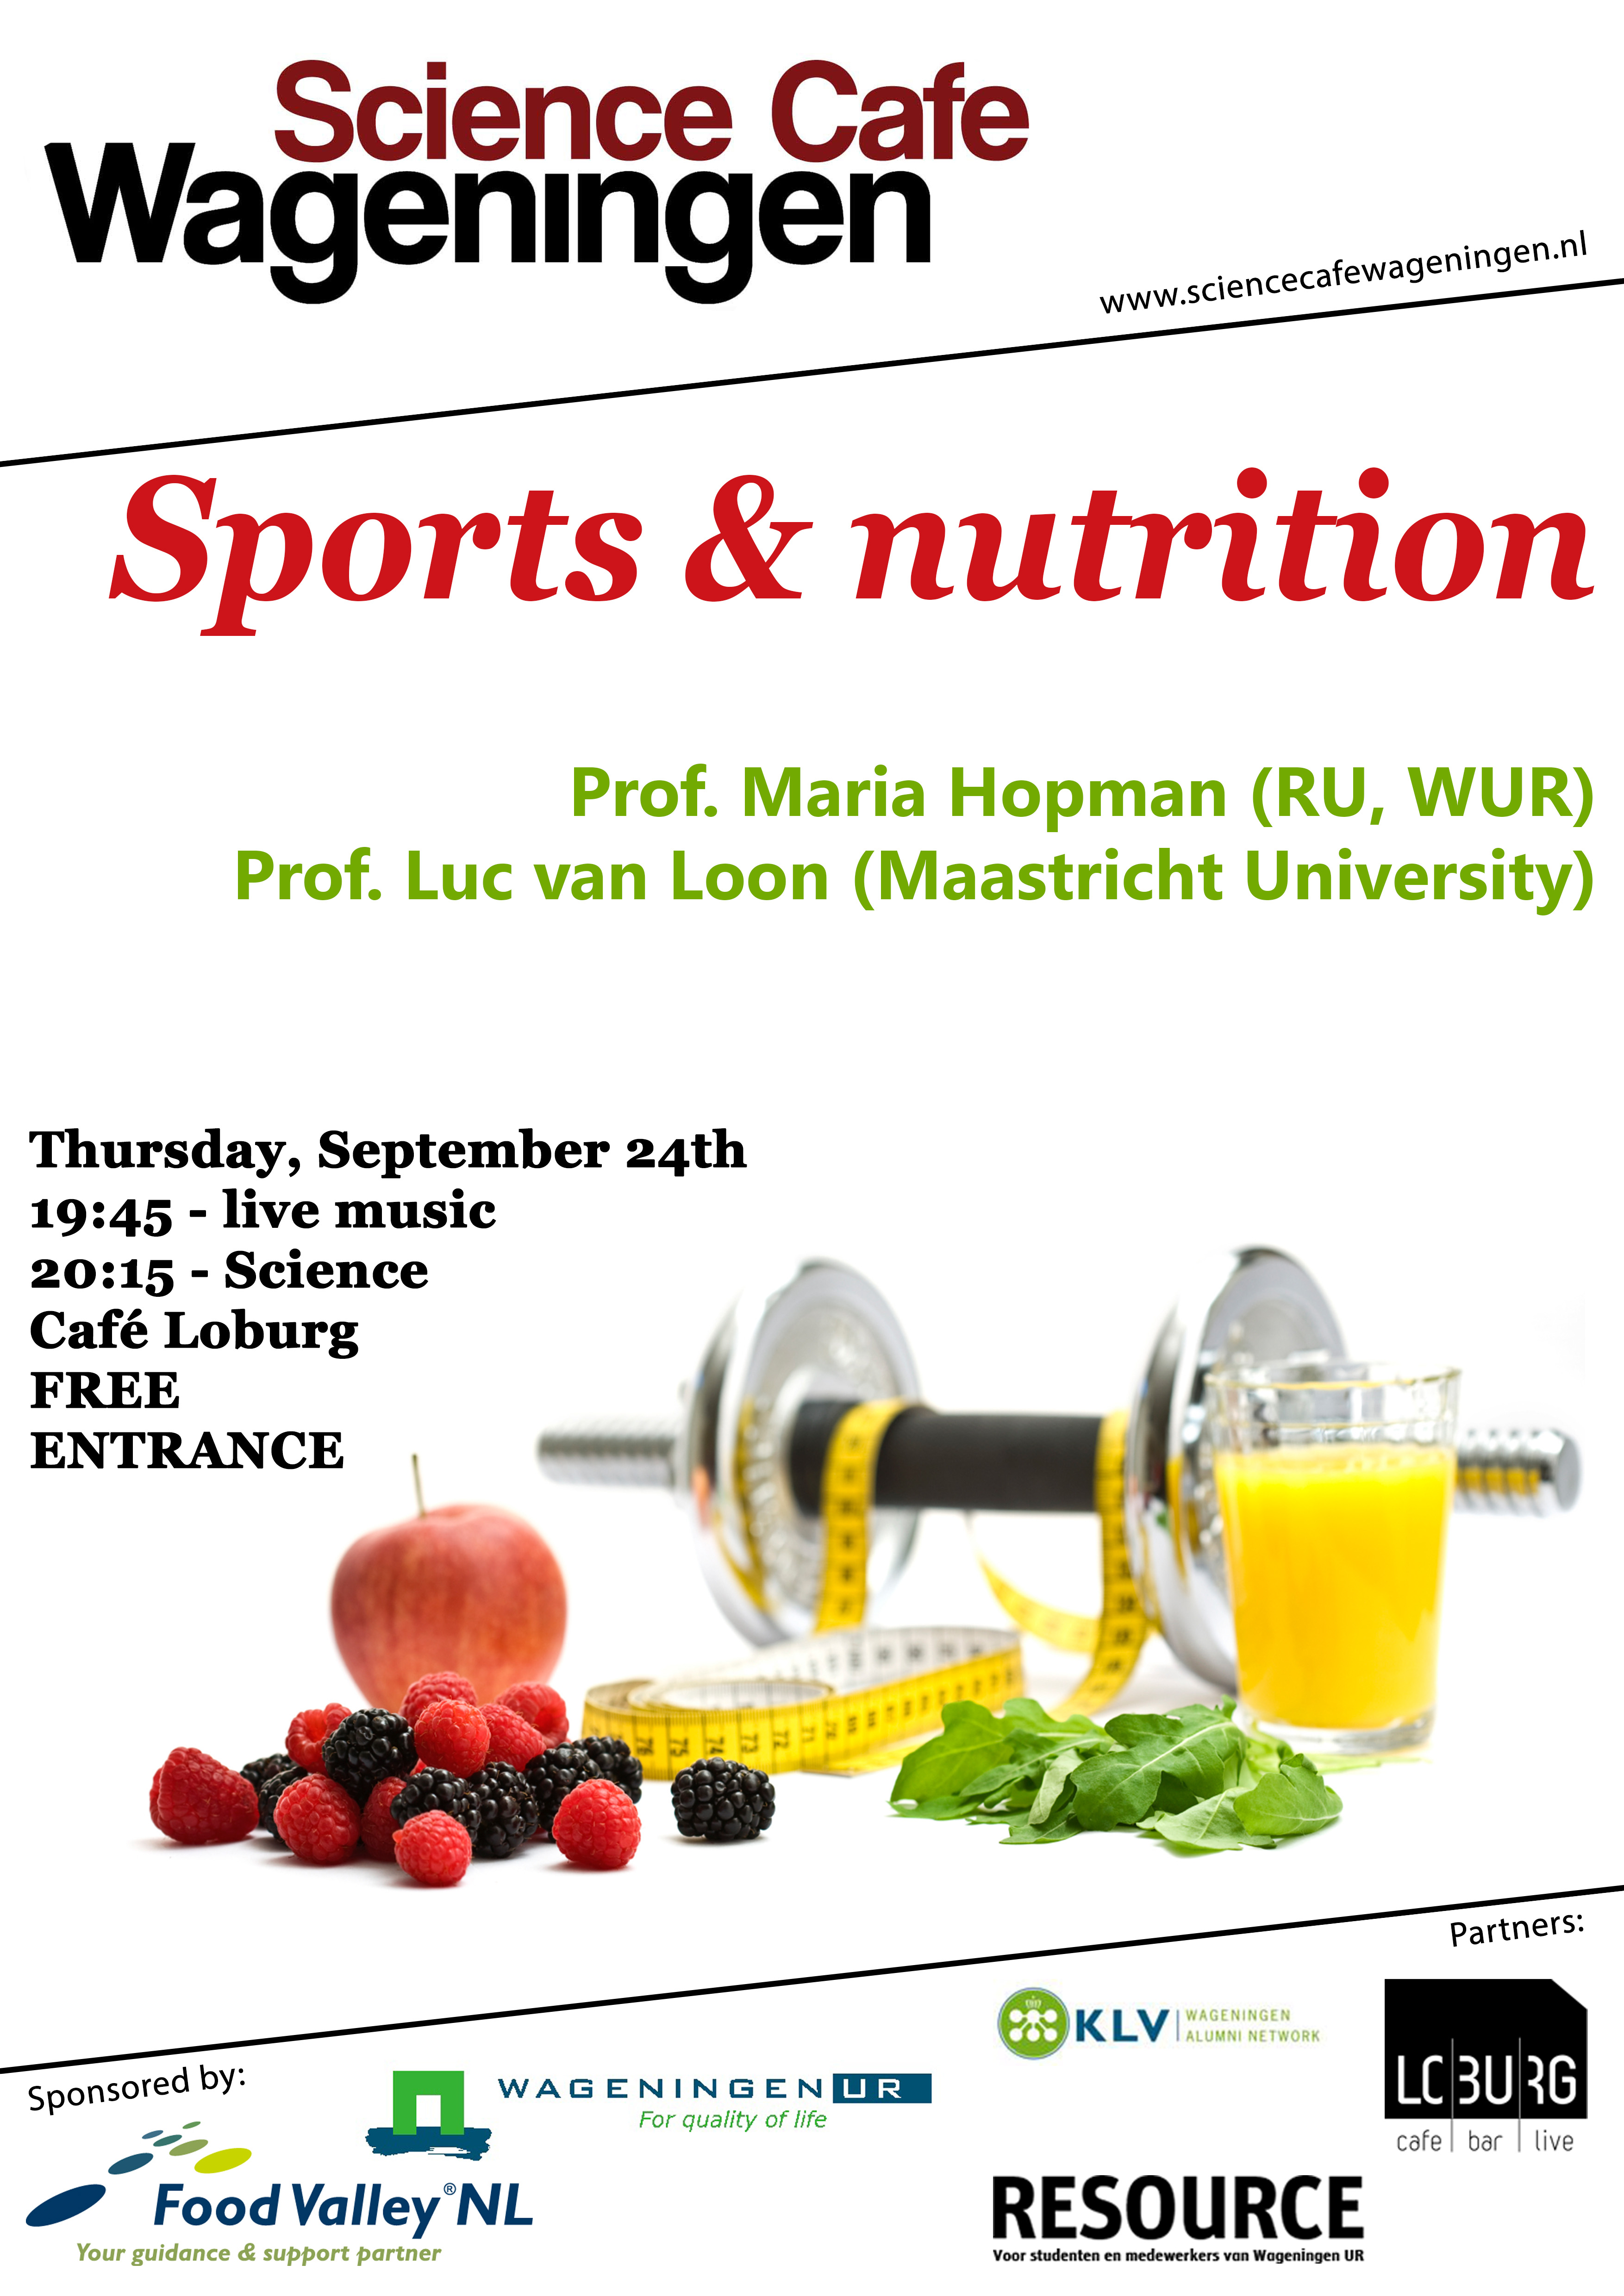 poster sports and nutrition Science Cae